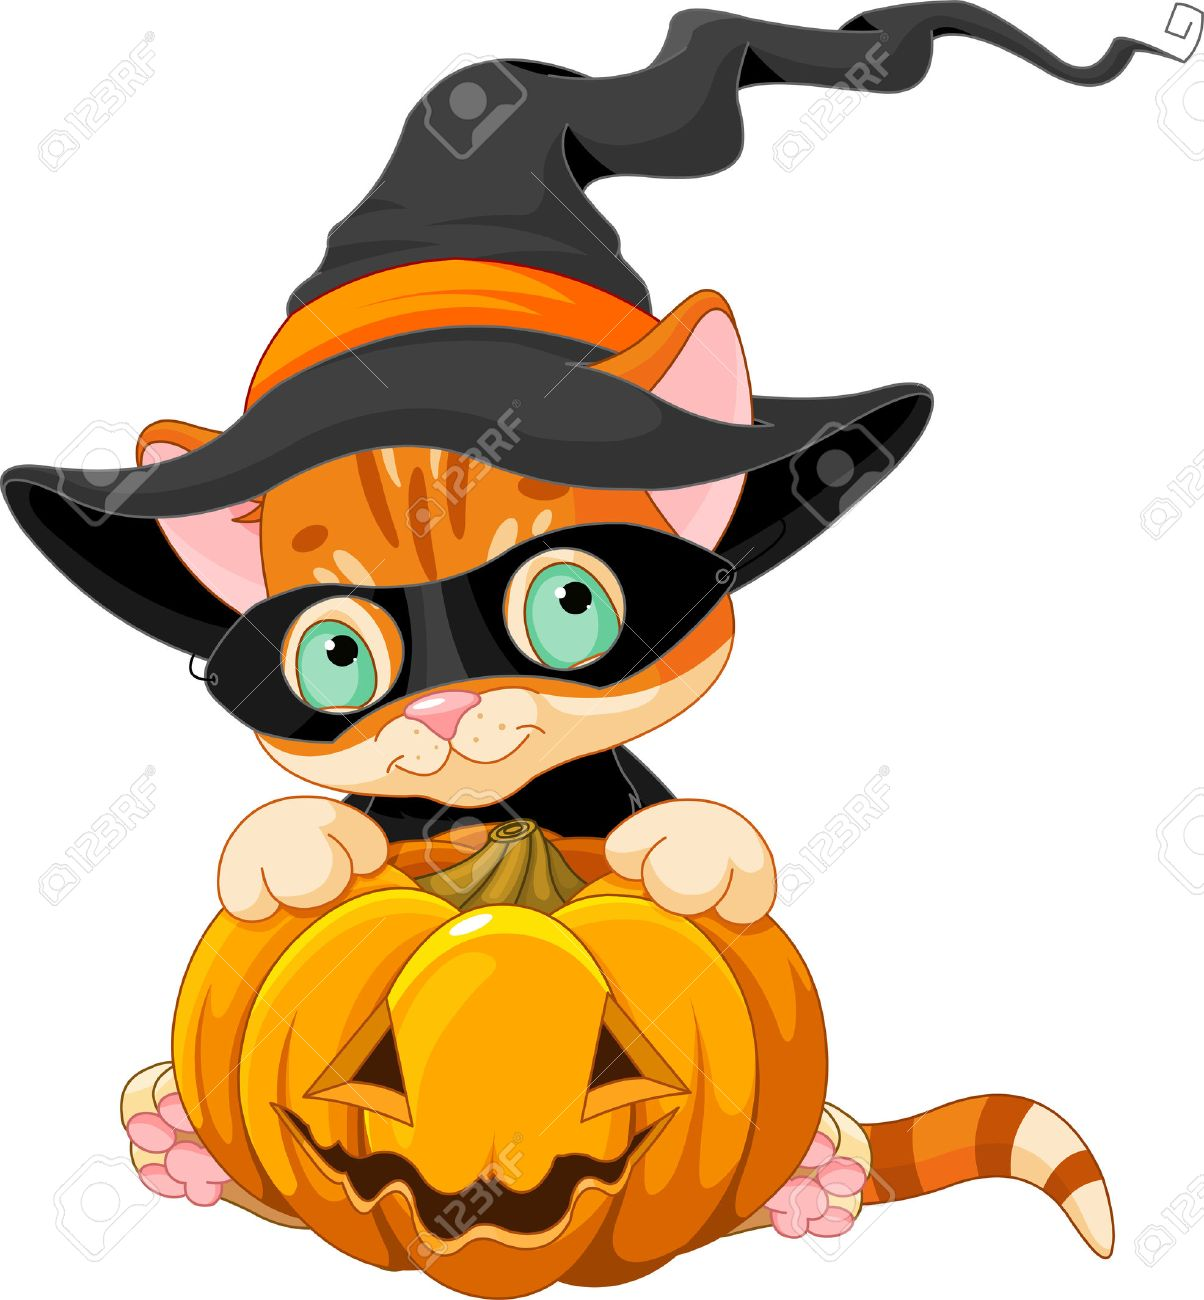 1204x1300 Halloween Cat Images Amp Stock Pictures. Royalty Free Halloween Cat